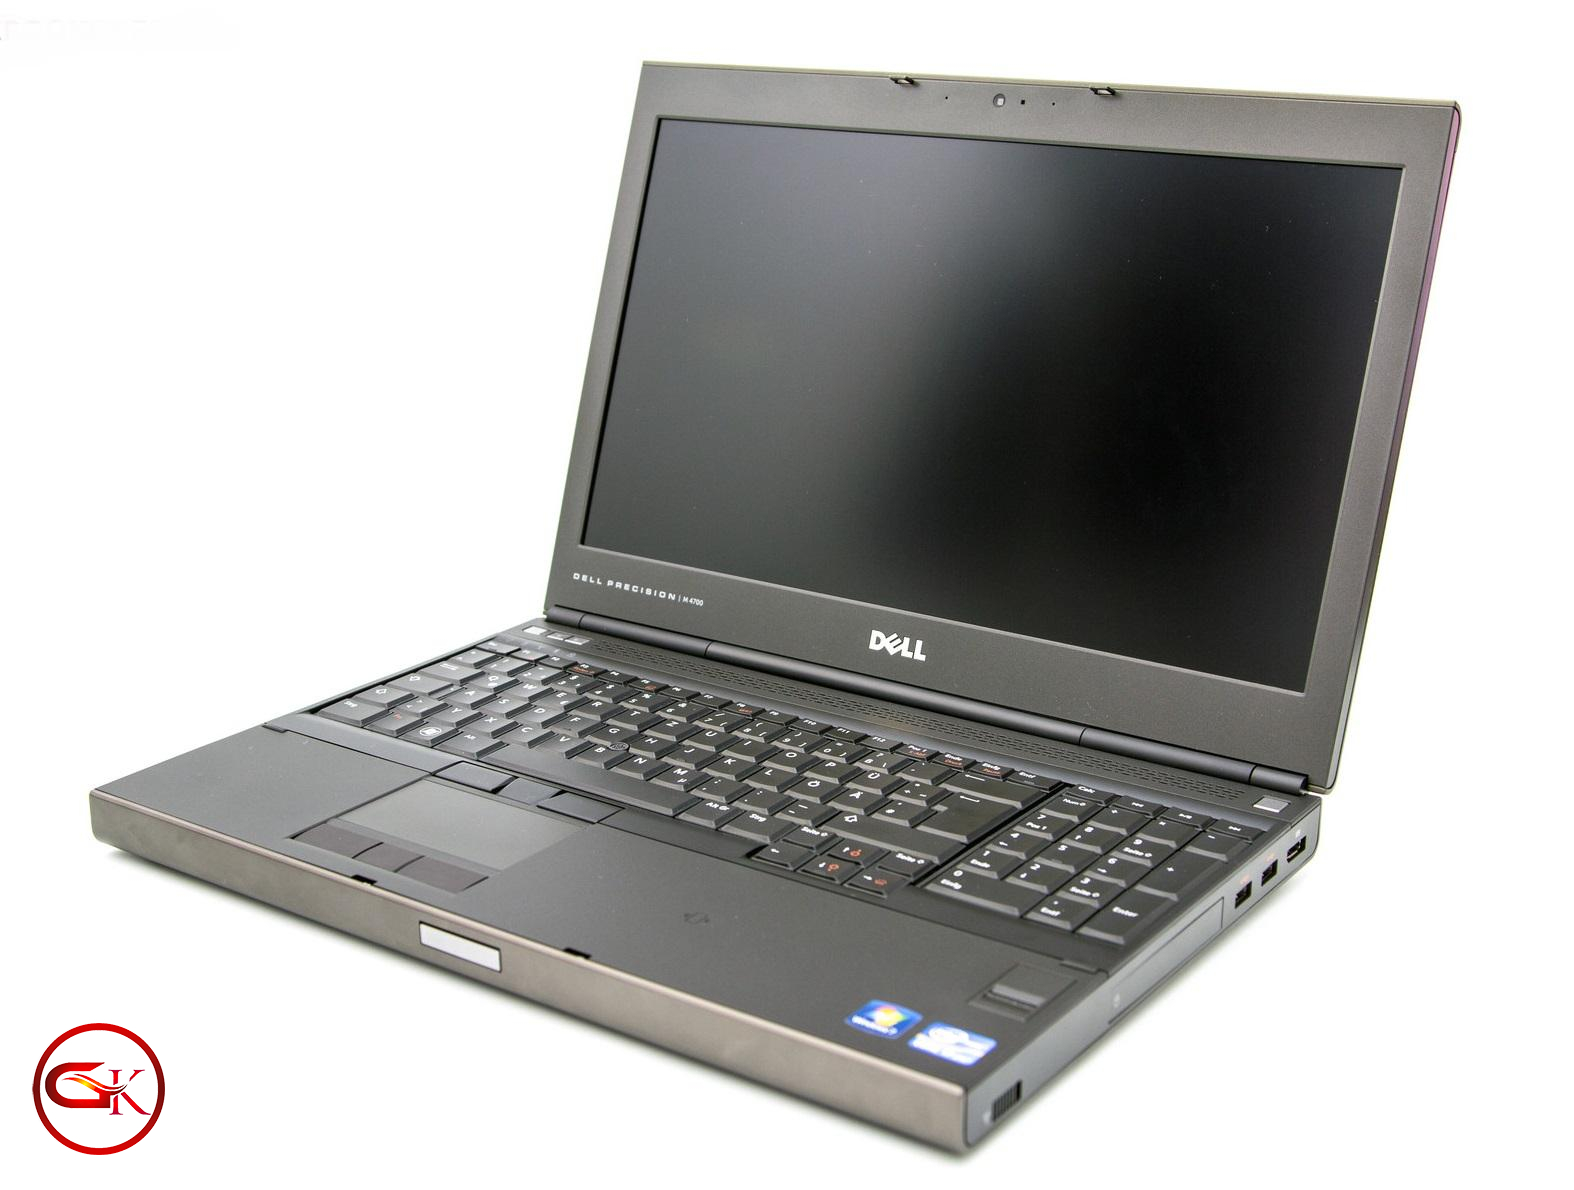 لپ تاپ دل Dell M6500 |CPU i7|RAM 8GB DDR3|500GB HDD